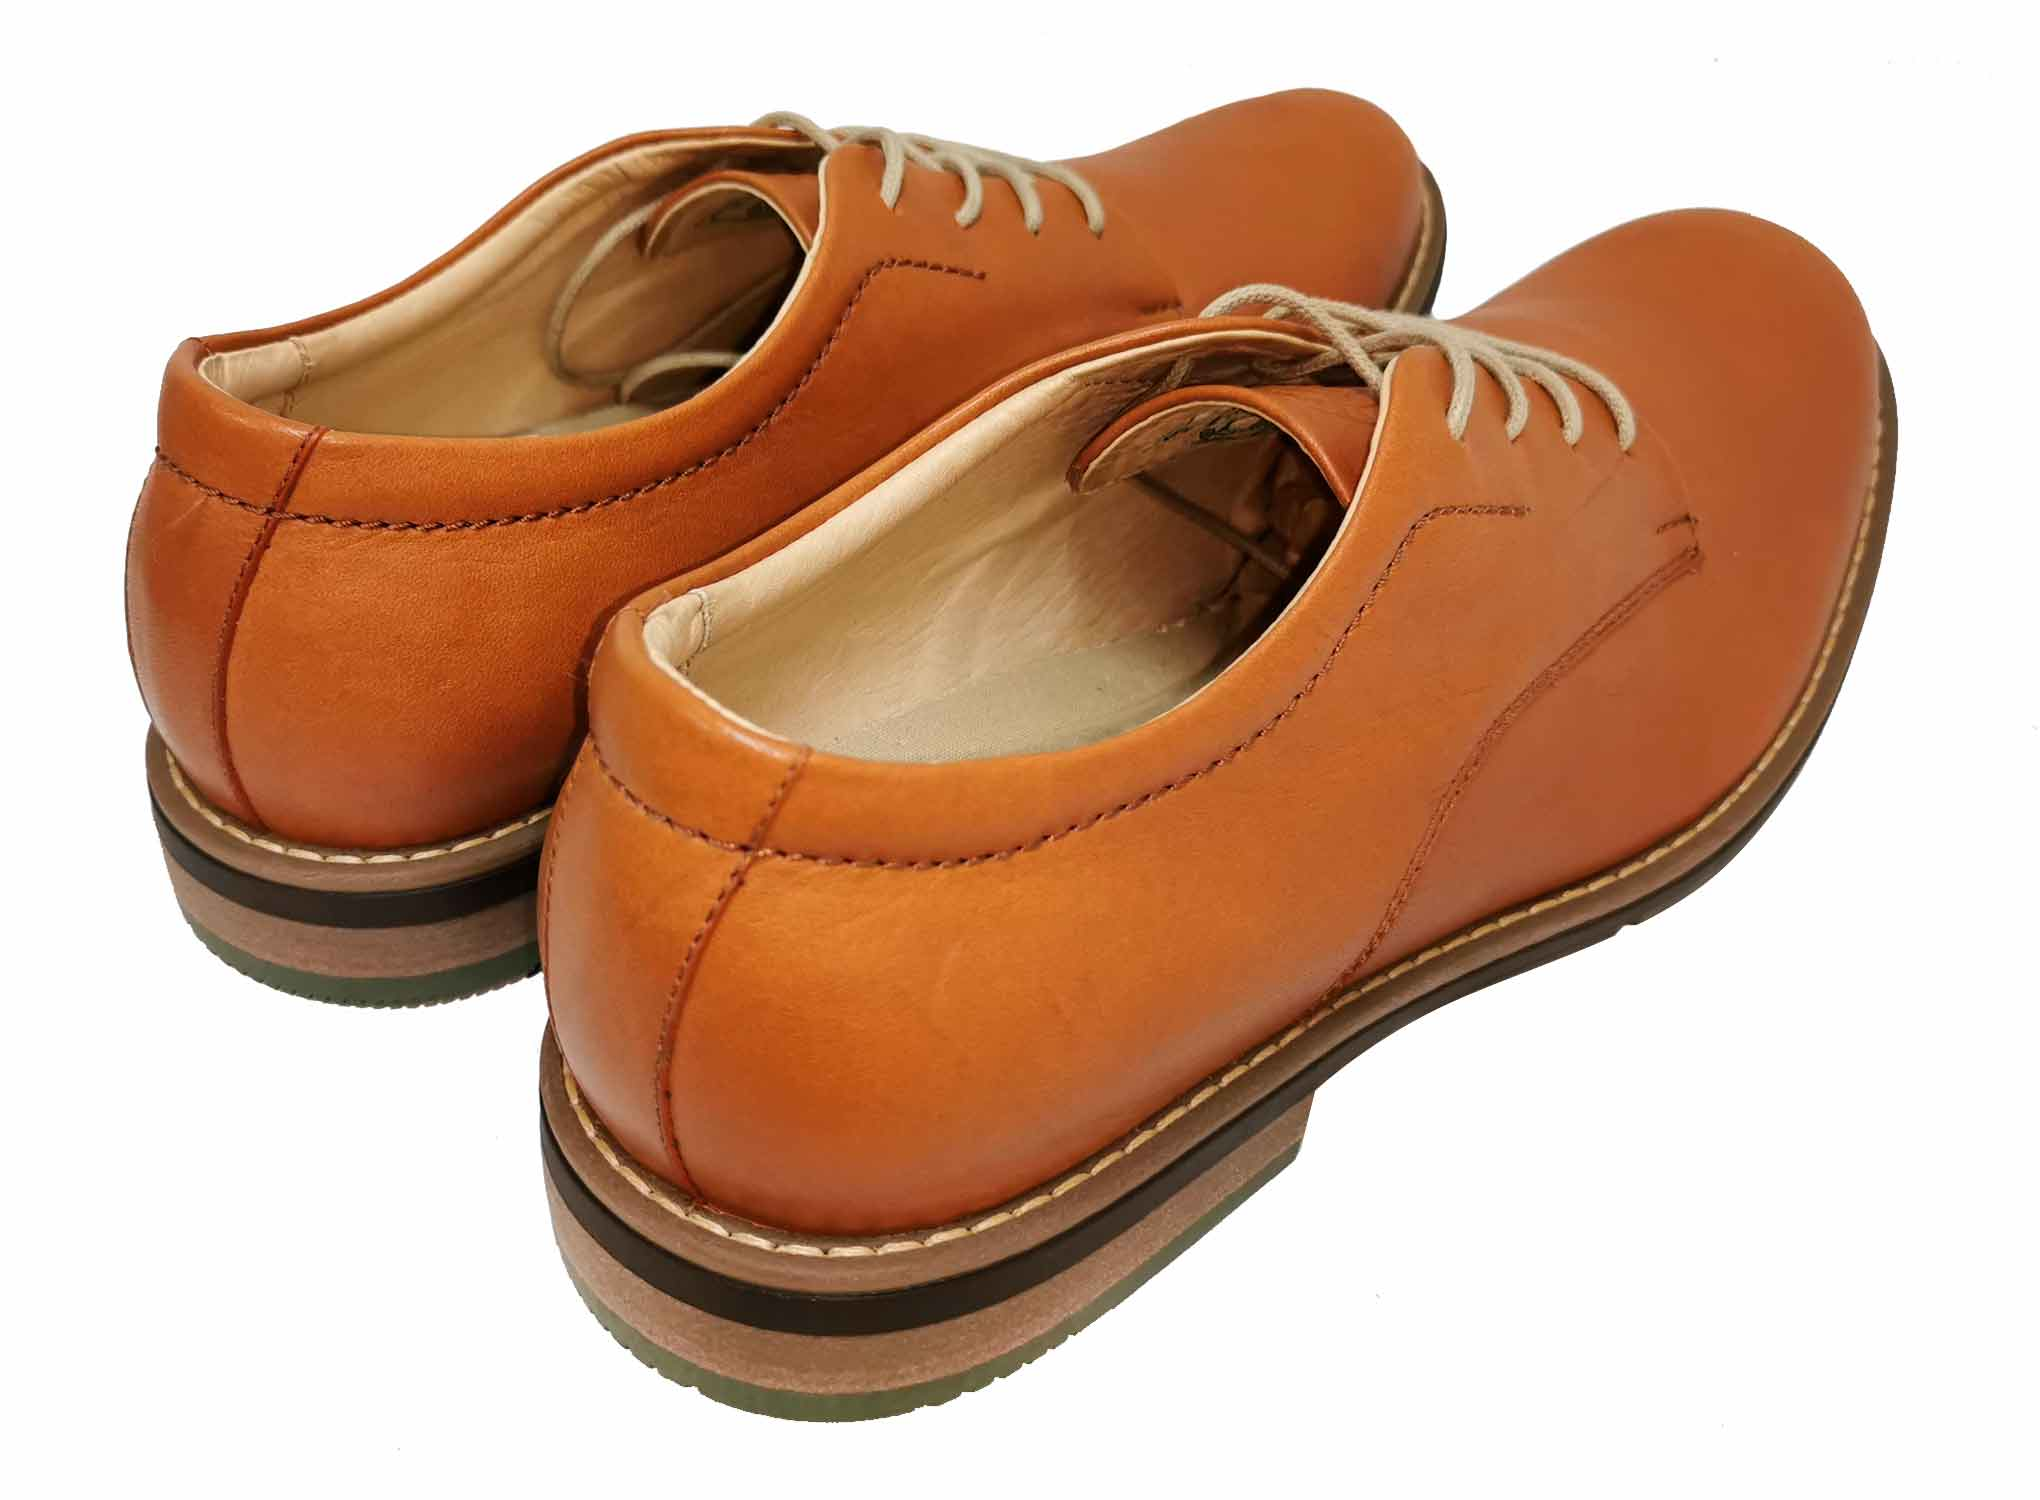 New Classic - Light Brown - Green Bear Shoes